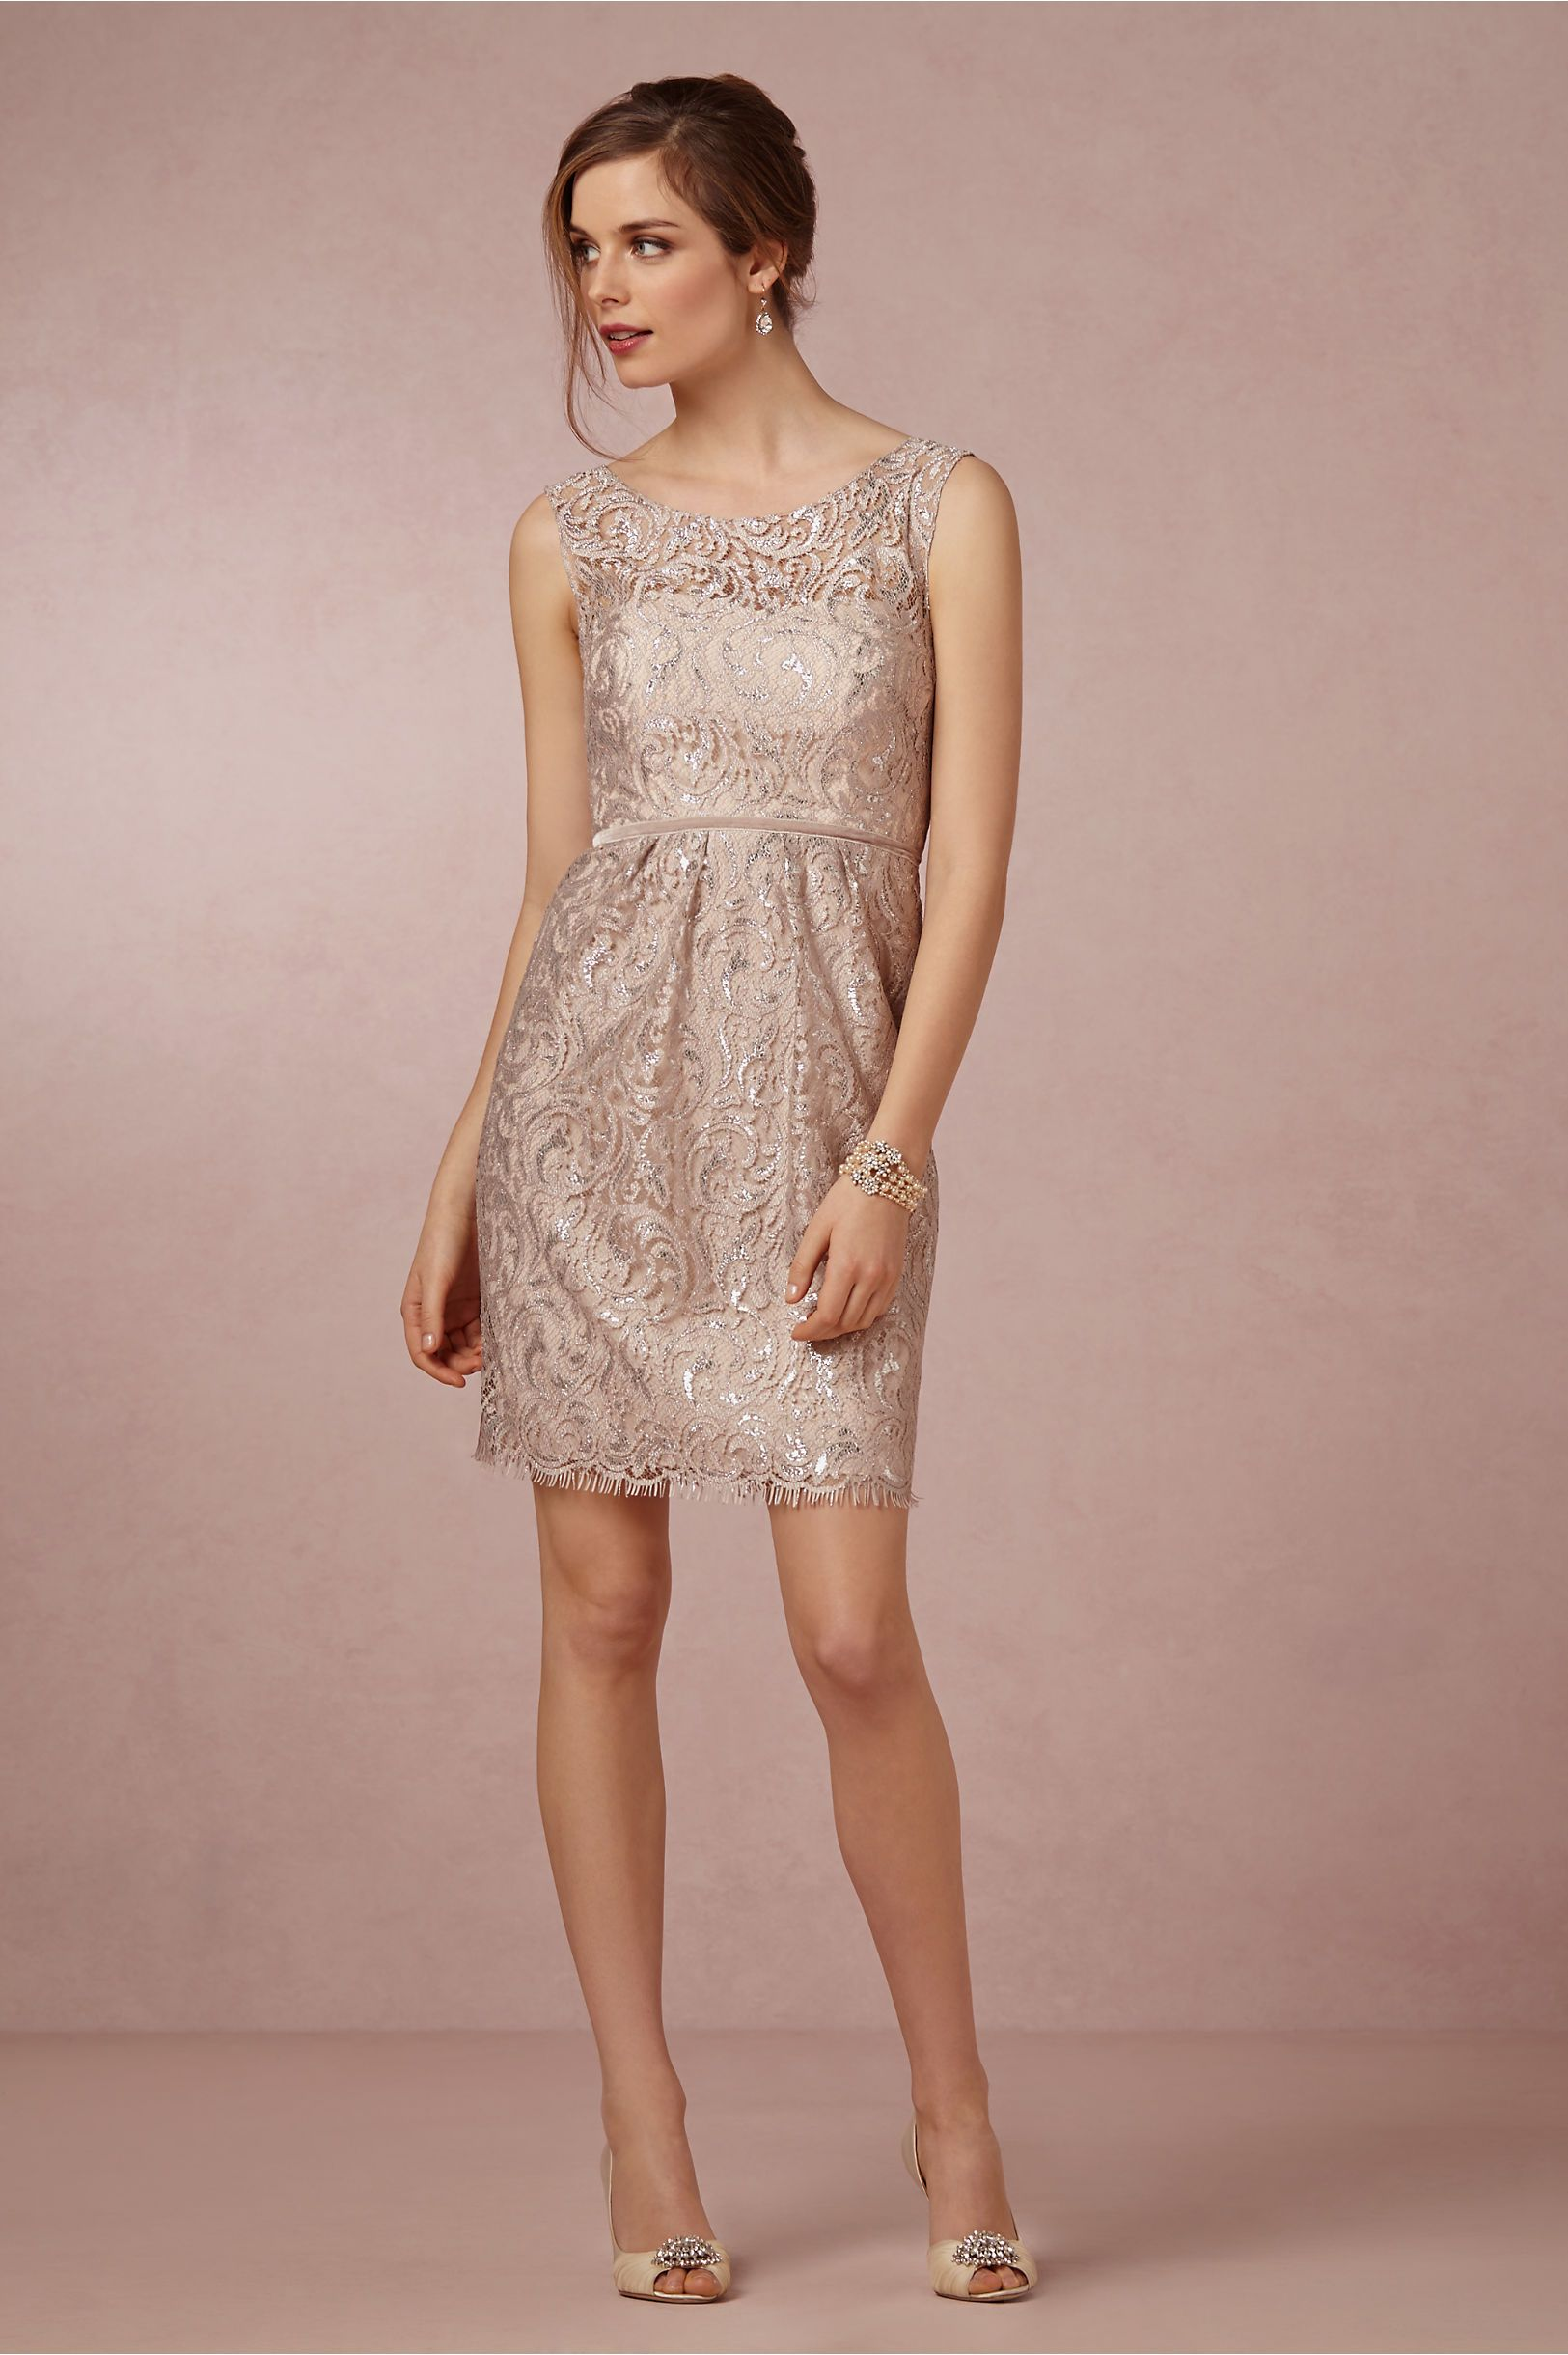 Harlow Dress in sandstone by Jenny Yoo from BHLDN | Bridesmaid ...